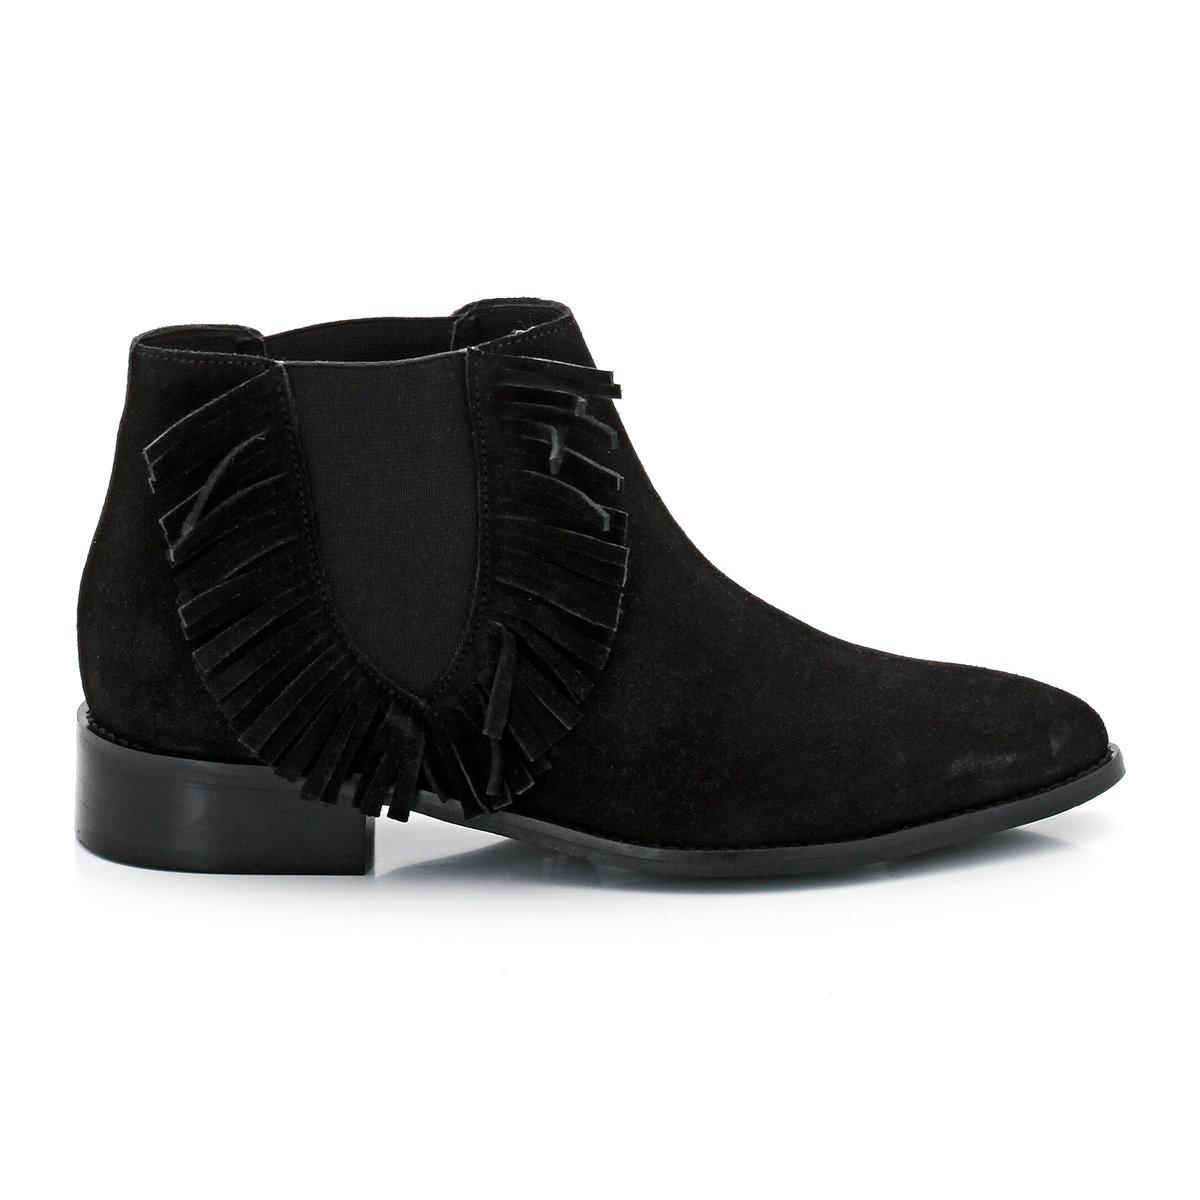 La Redoute Collections Chelsea Suede Ankle Boots. best wholesale for sale best wholesale discount best store to get Yta1k5